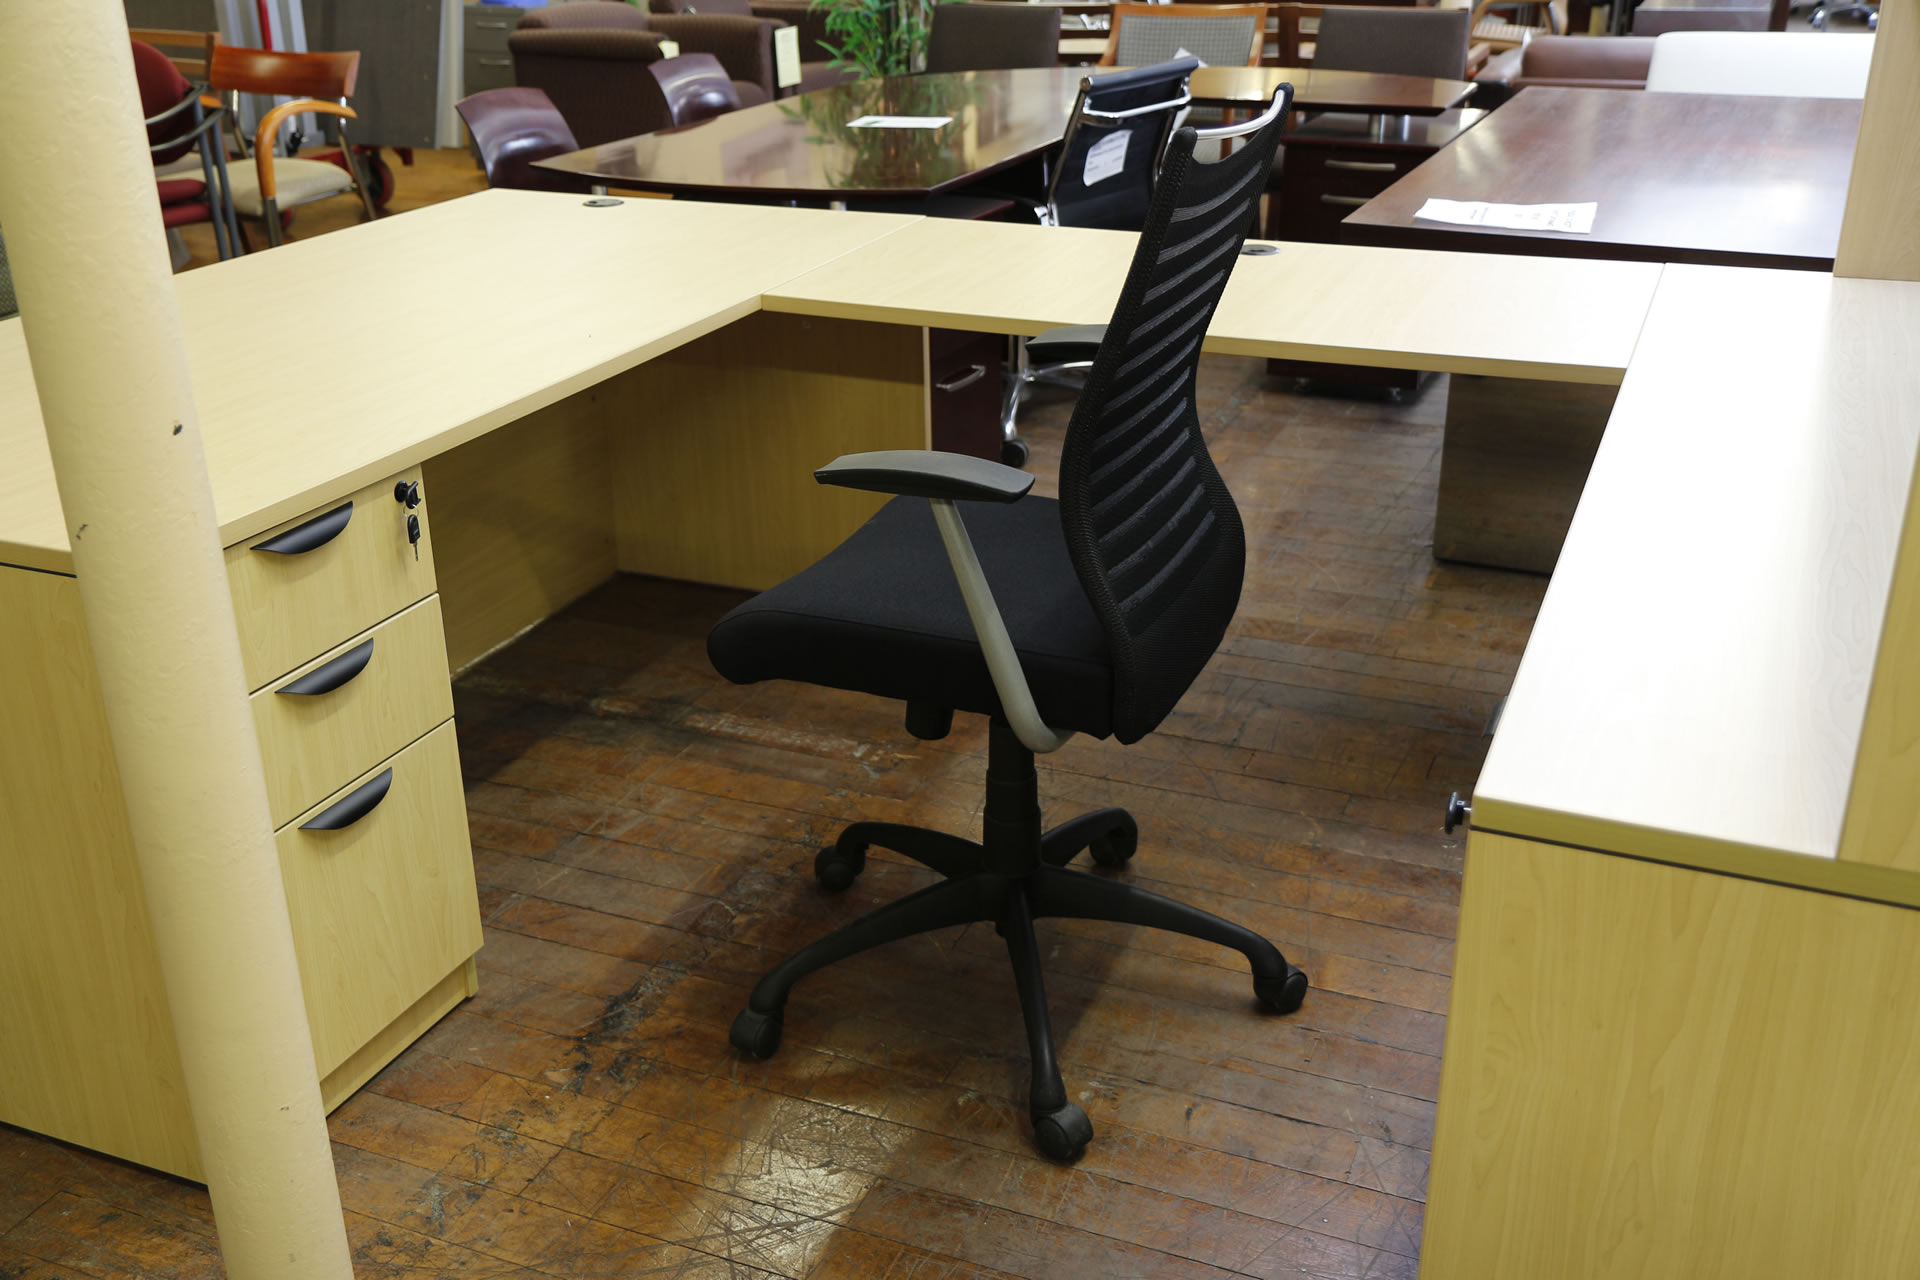 peartreeofficefurniture_peartreeofficefurniture_peartreeofficefurniture_2015-06-18_20-14-03.jpg